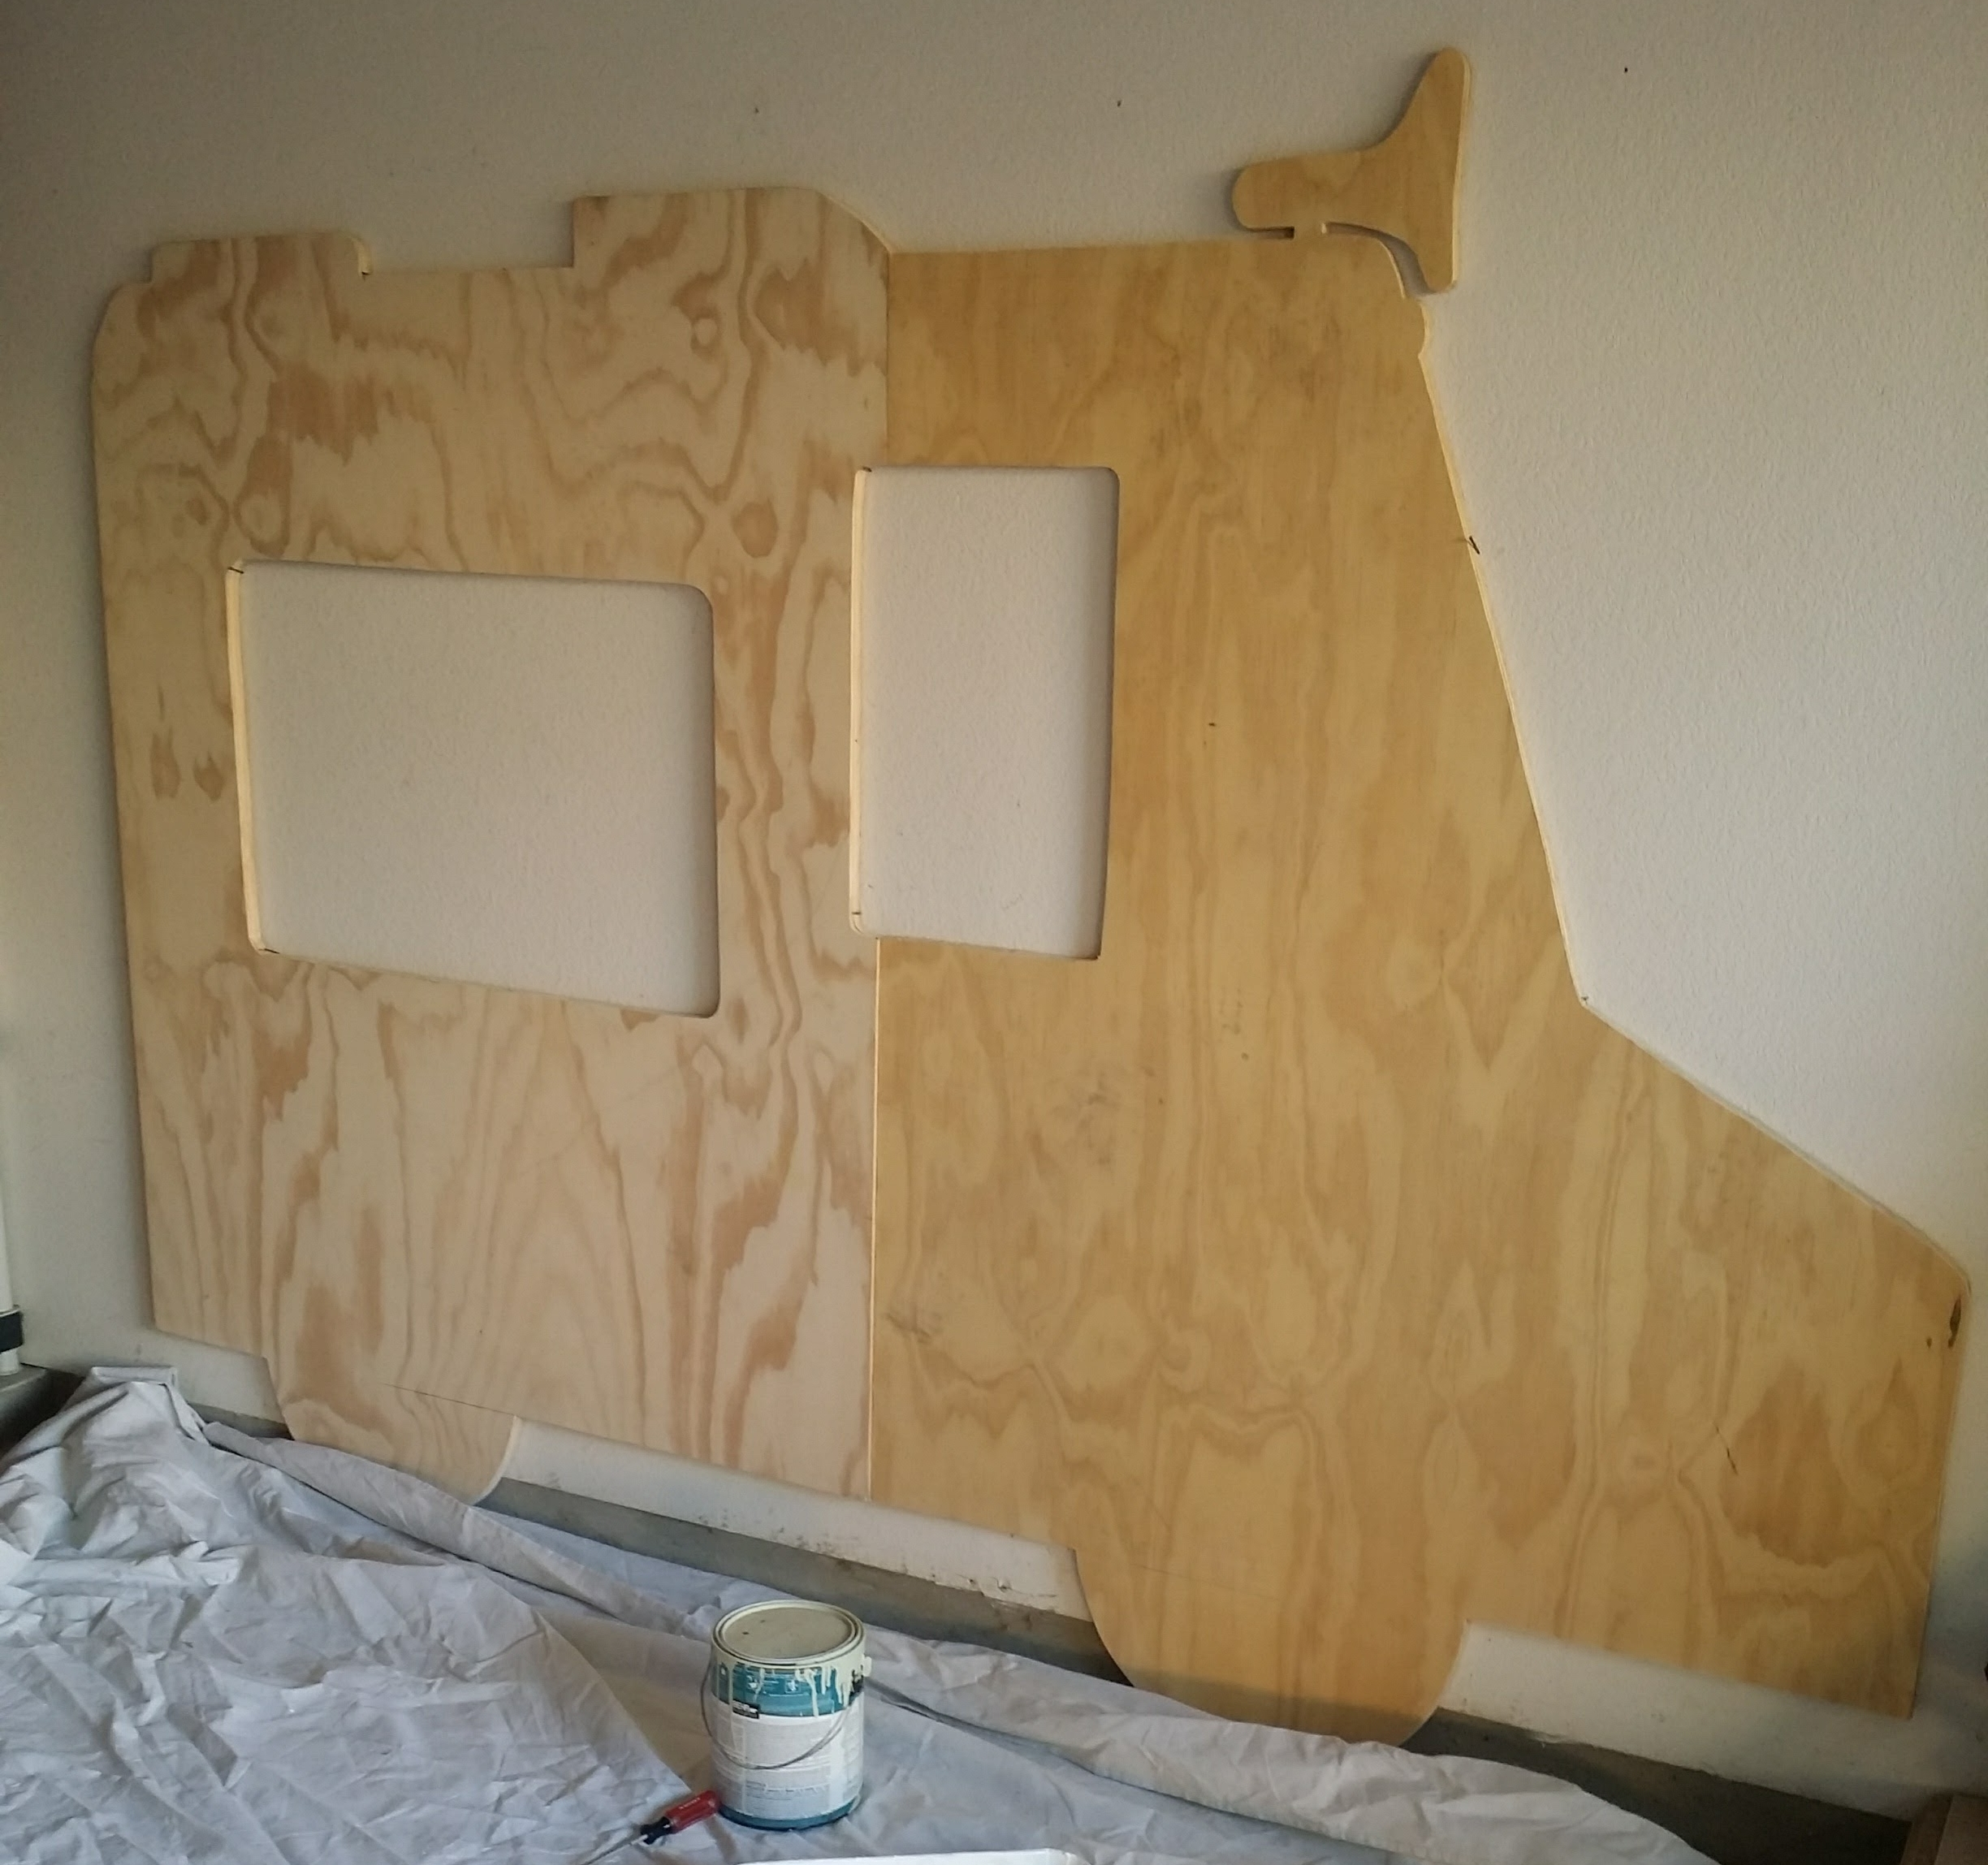 Plywood cut out